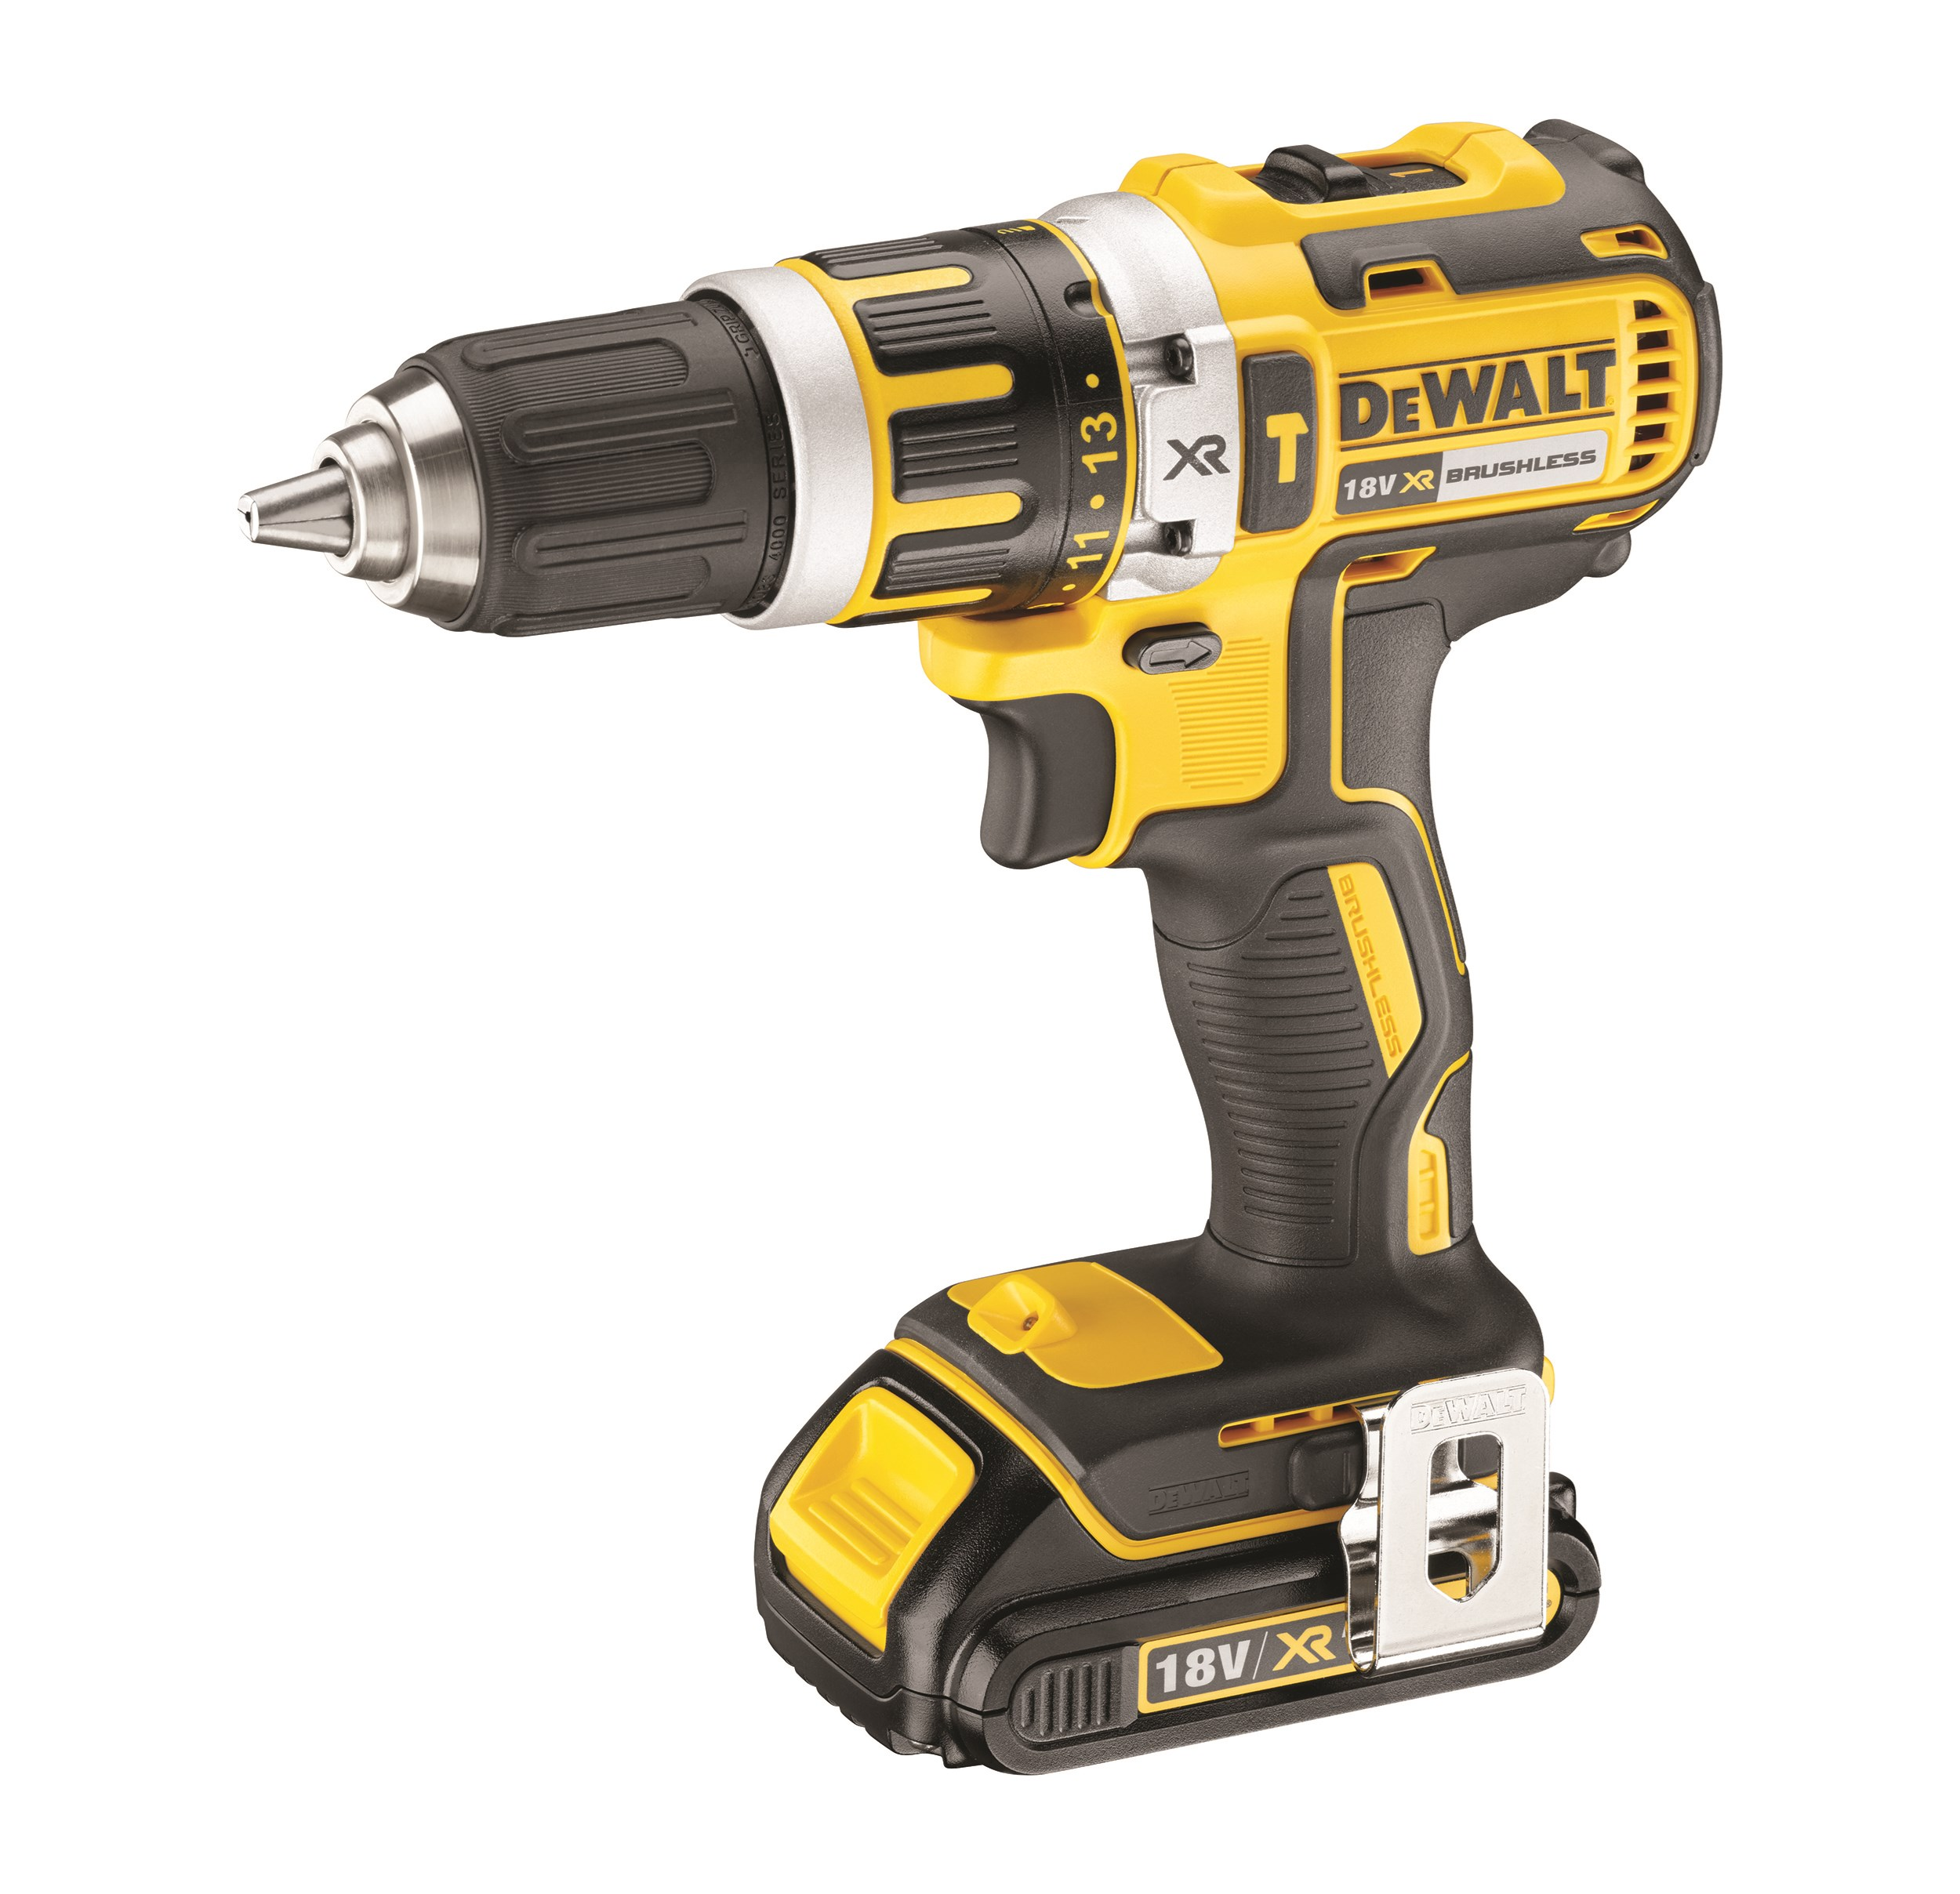 Dewalt Dcd795m1 Compact Brushless Hammer Drill Driver